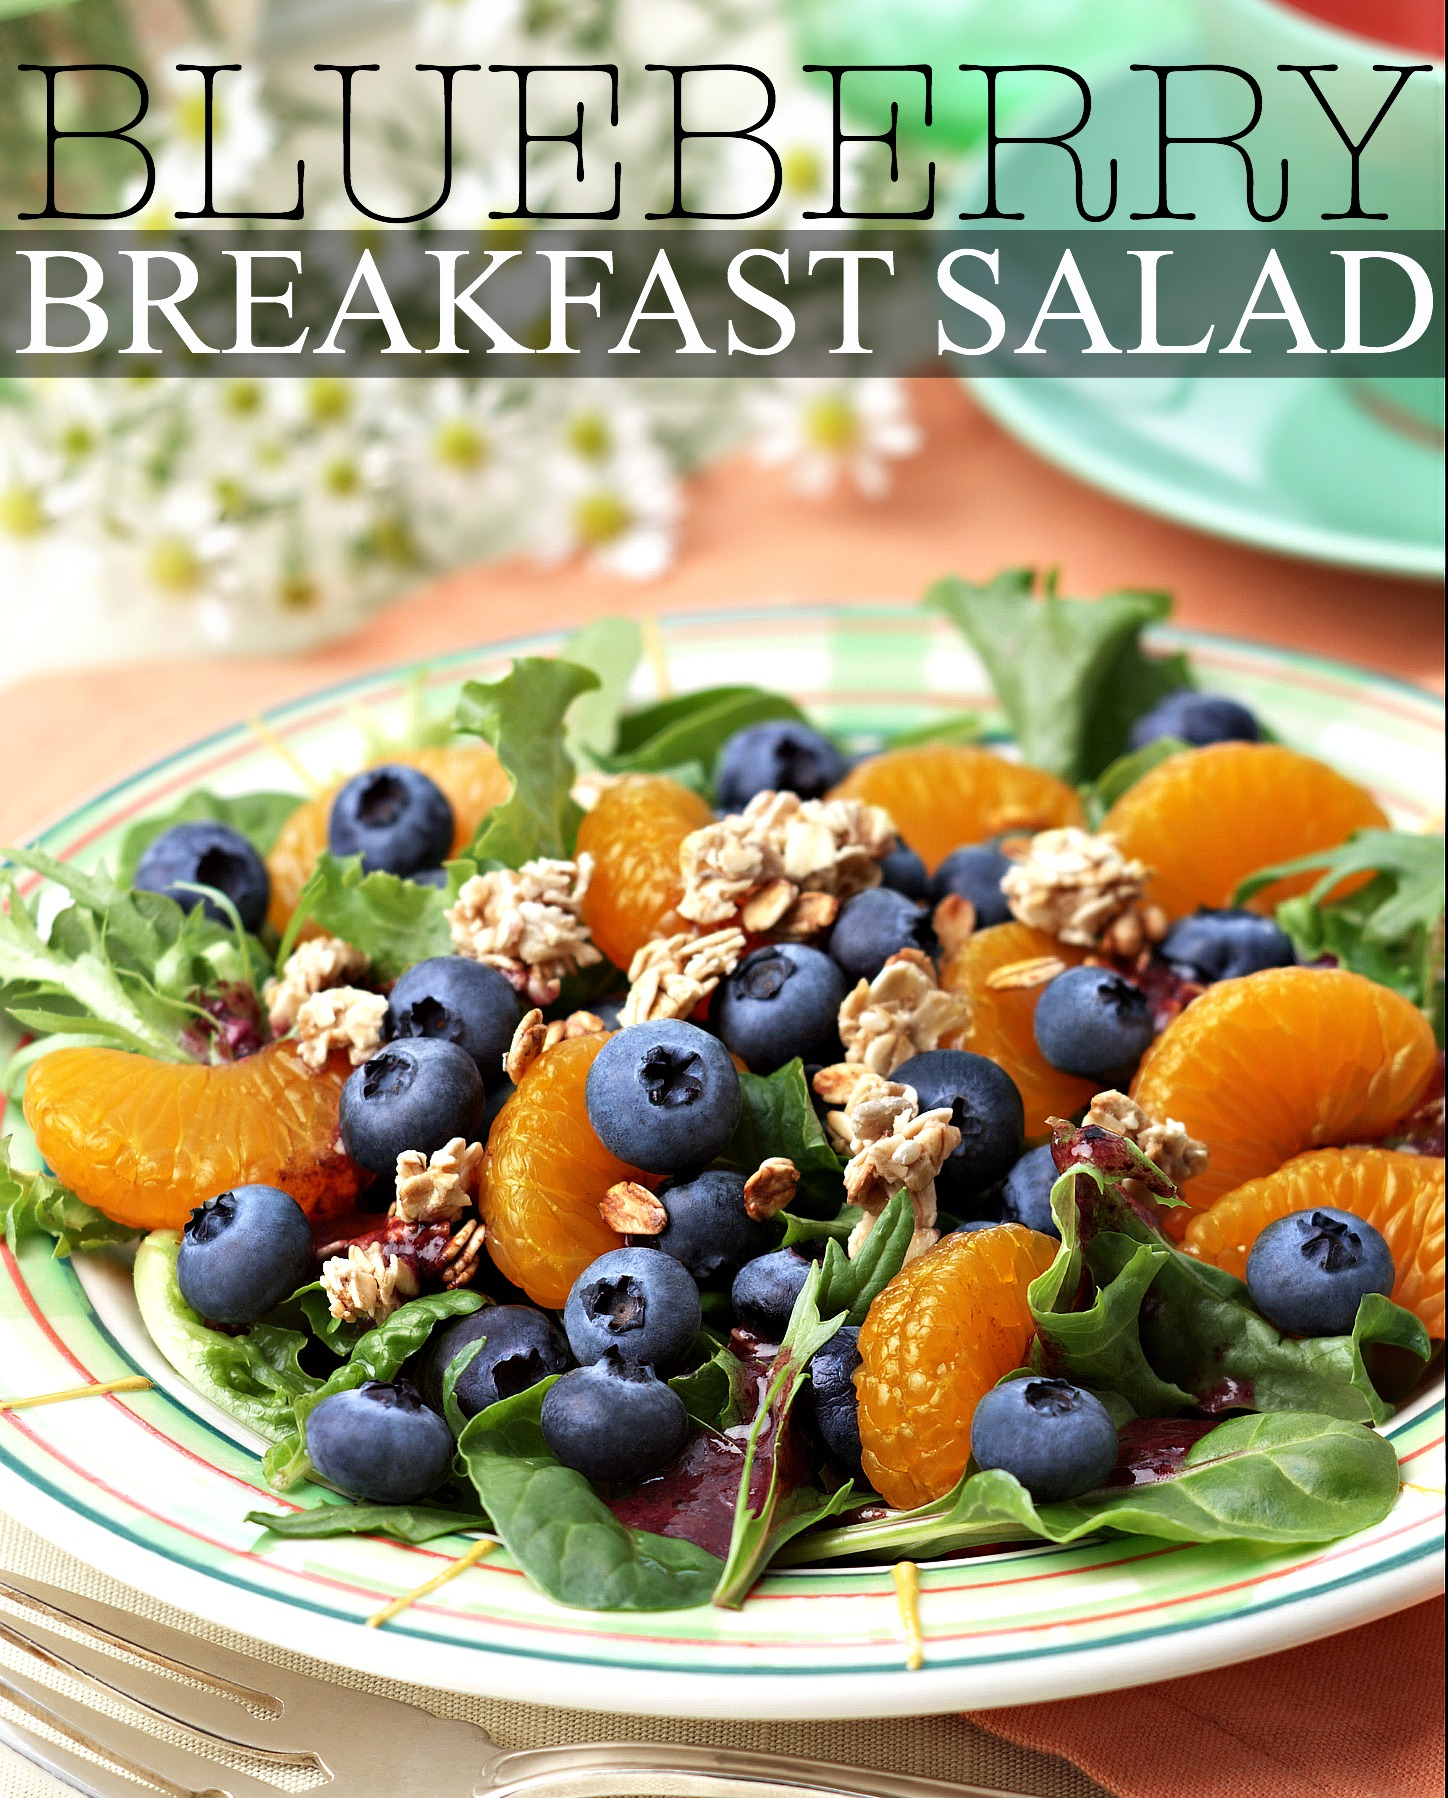 Red White & Blueberry Recipes: Blueberry Breakfast Salad